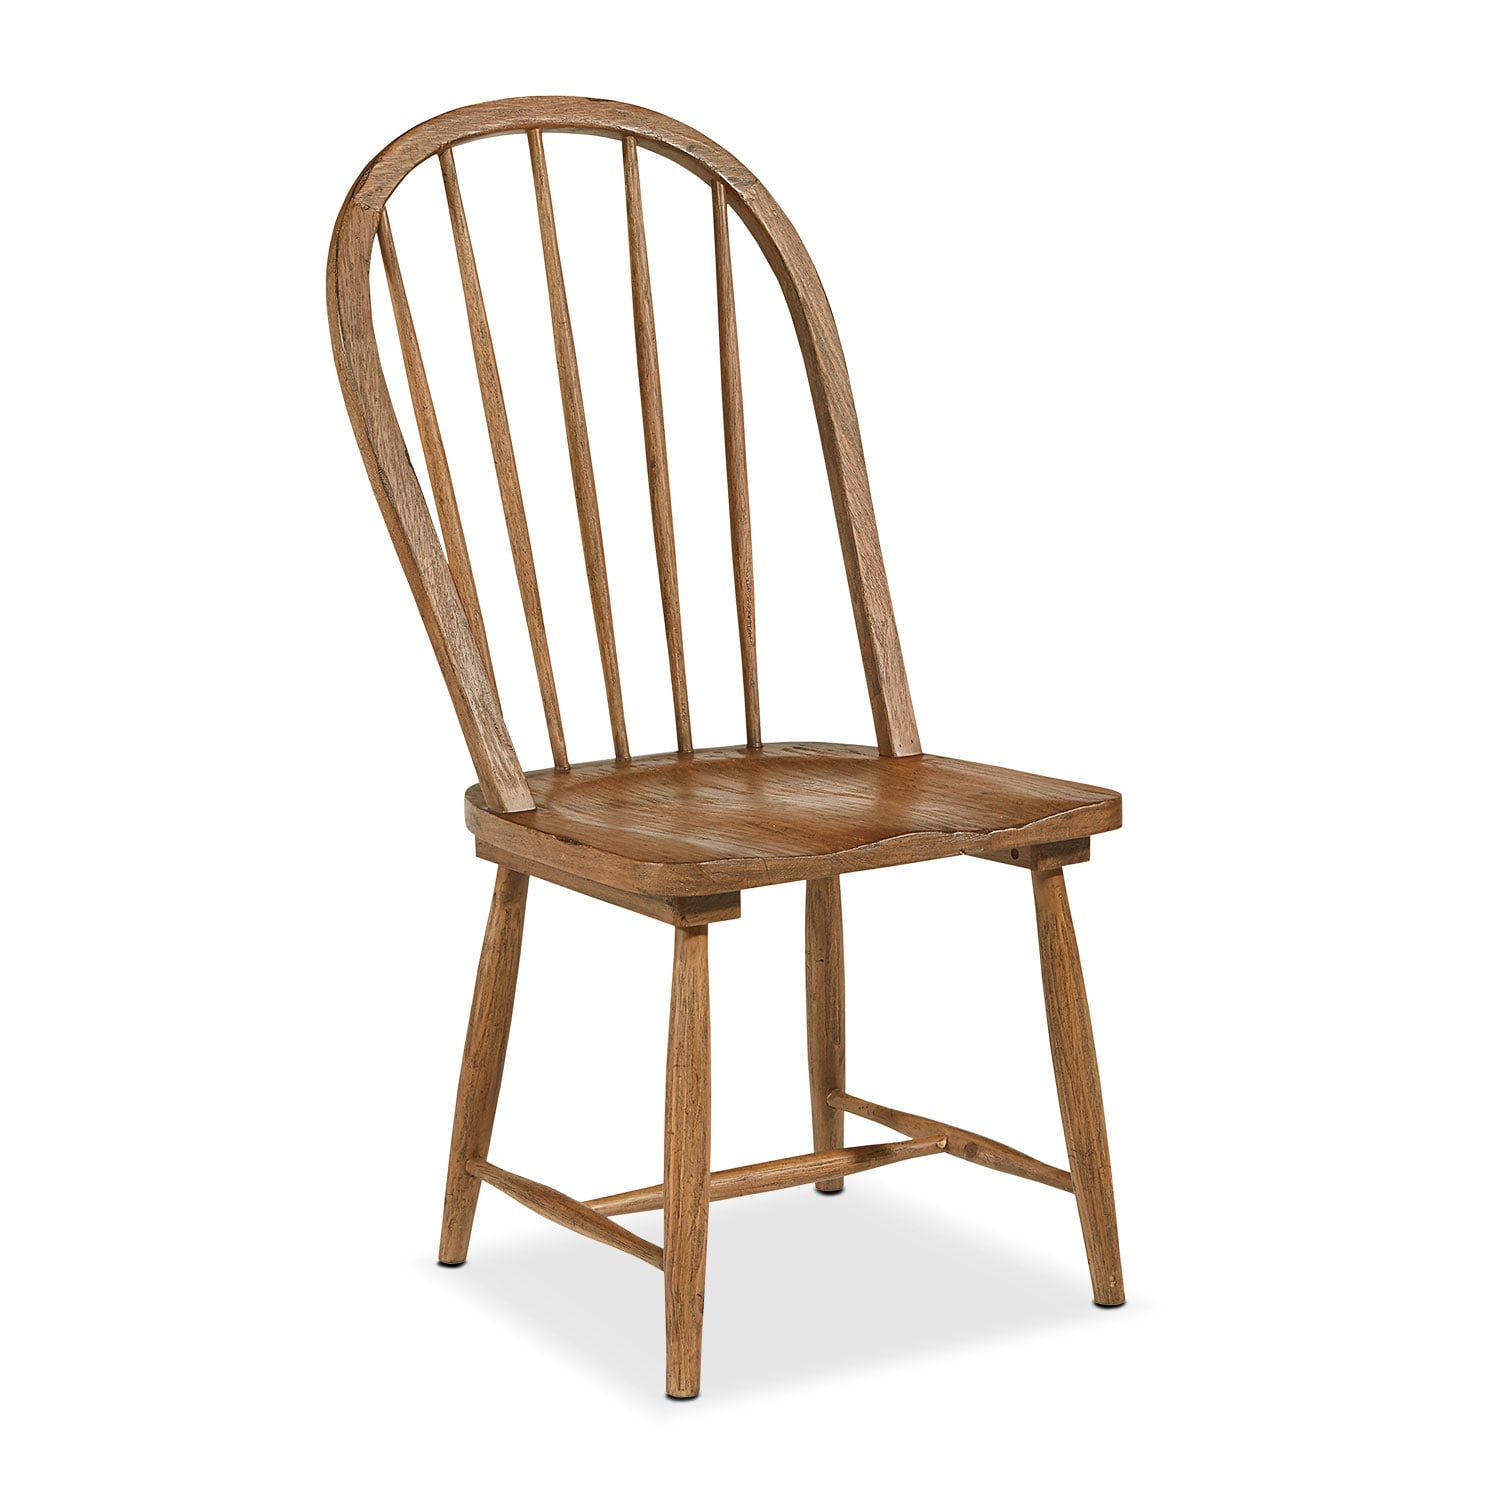 Dining Room Furniture - Primitive Windsor Hoop Side Chair - Bench